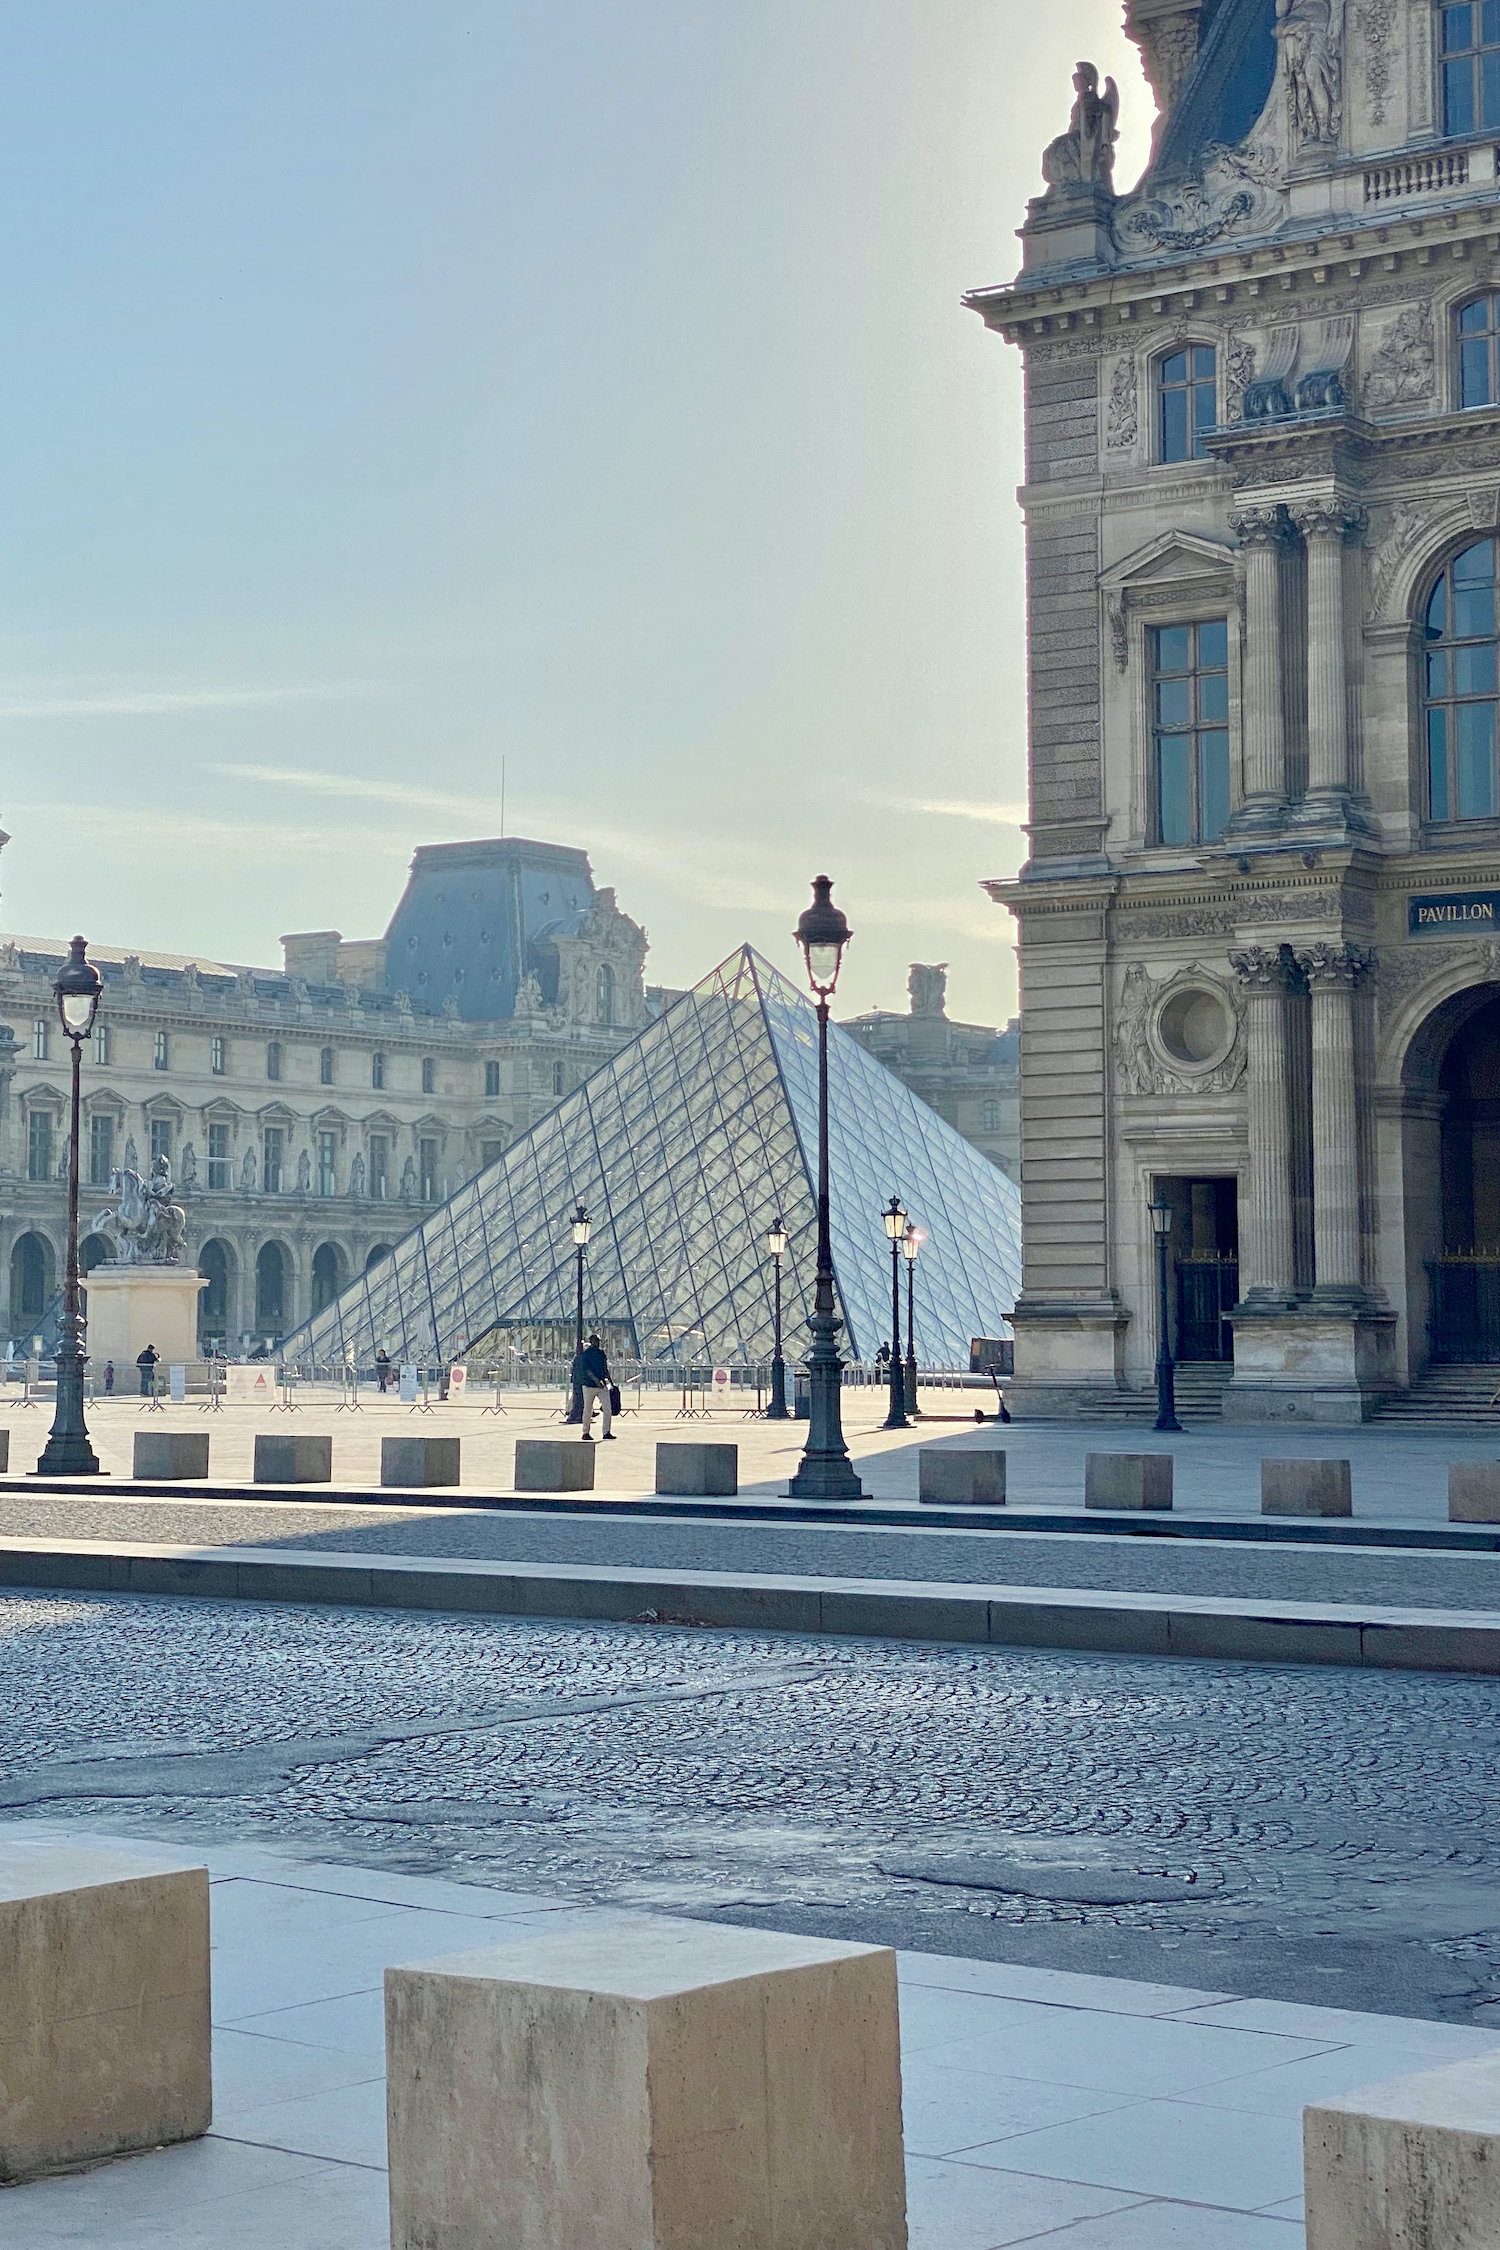 Morning at the Louvre